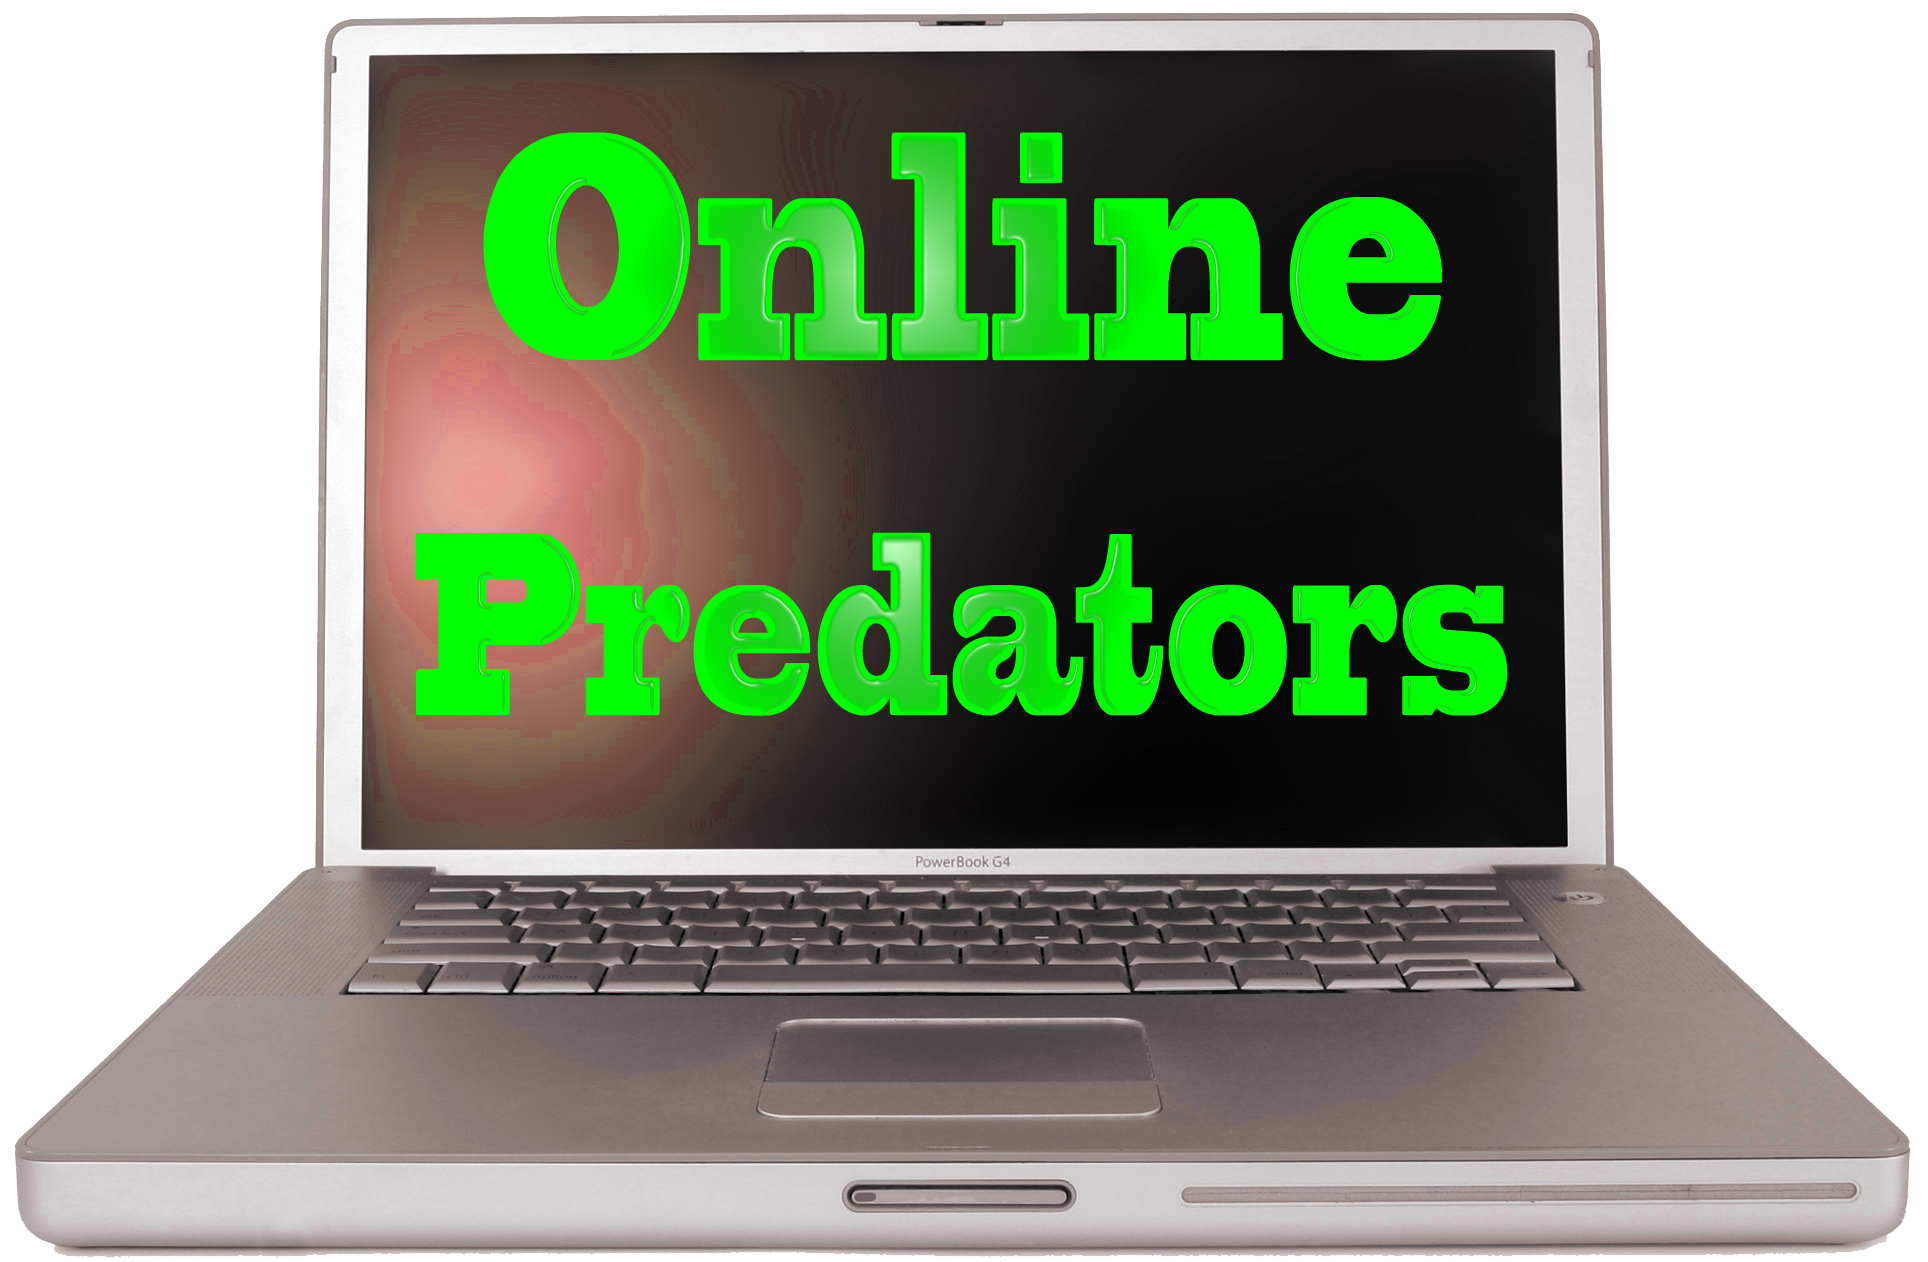 Online dating sites known to host predators